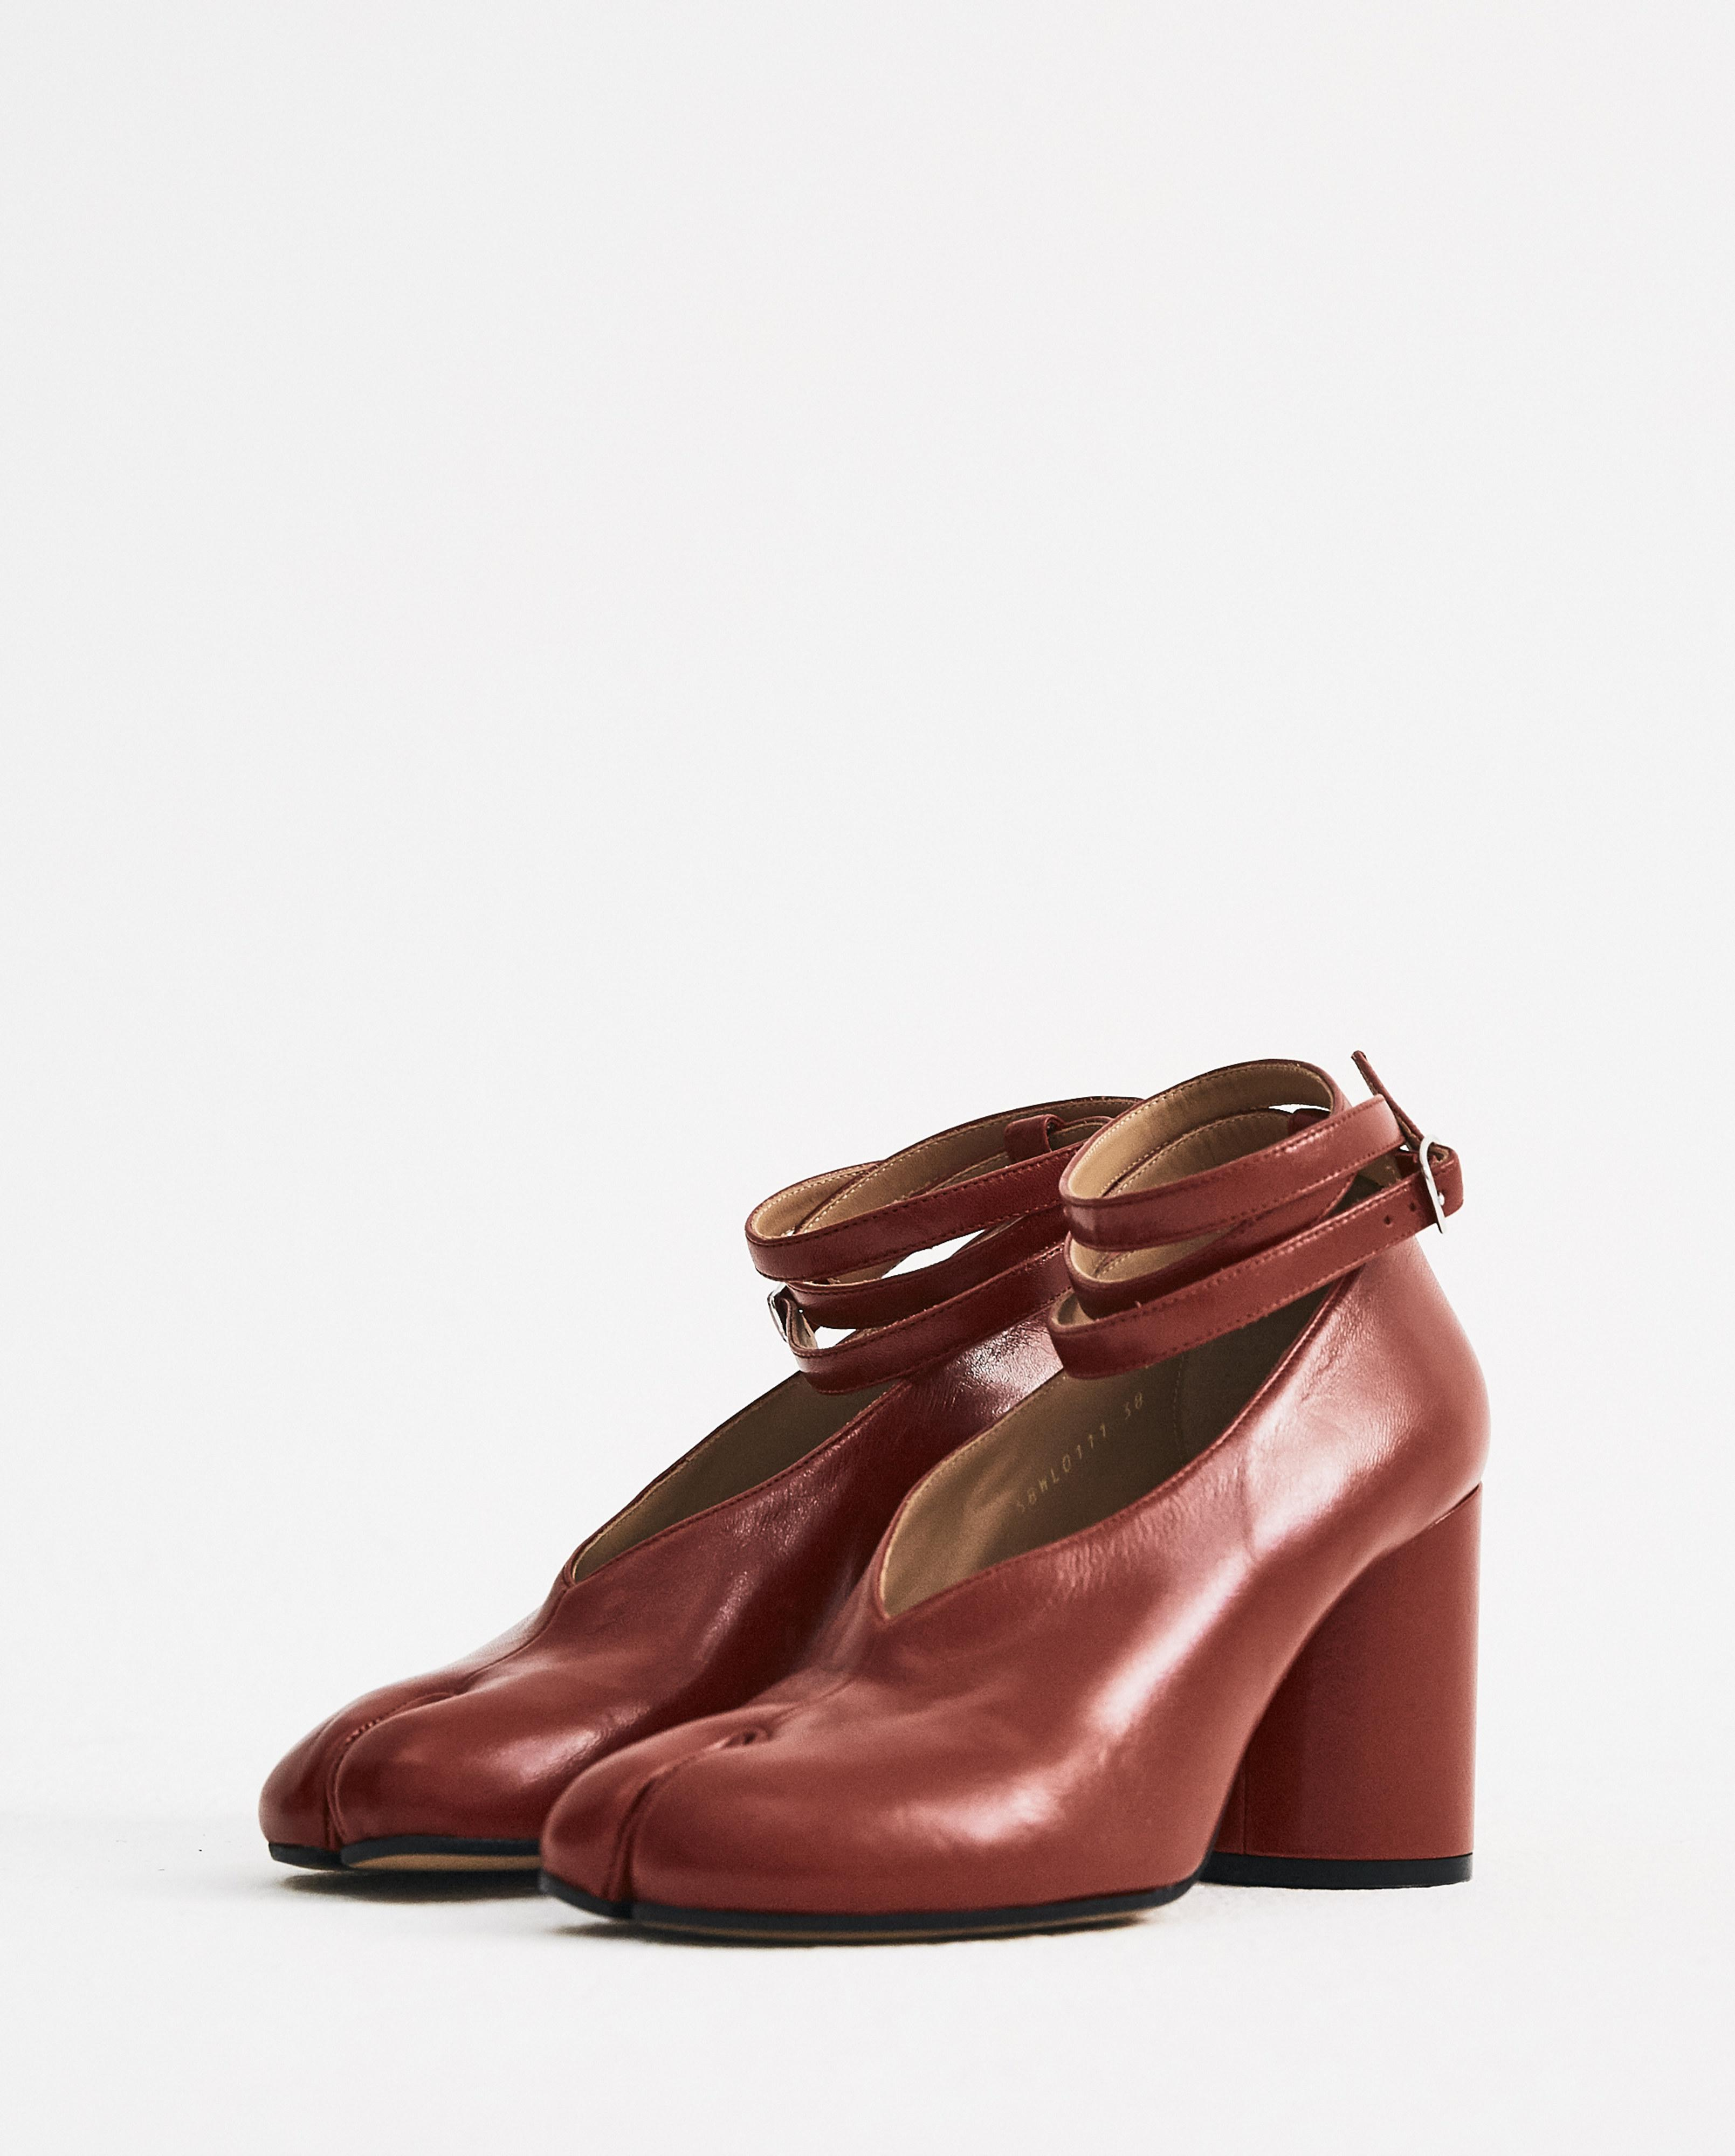 fc452a72760a Lyst - Maison Margiela Red Strapped Tabi Heels in Red